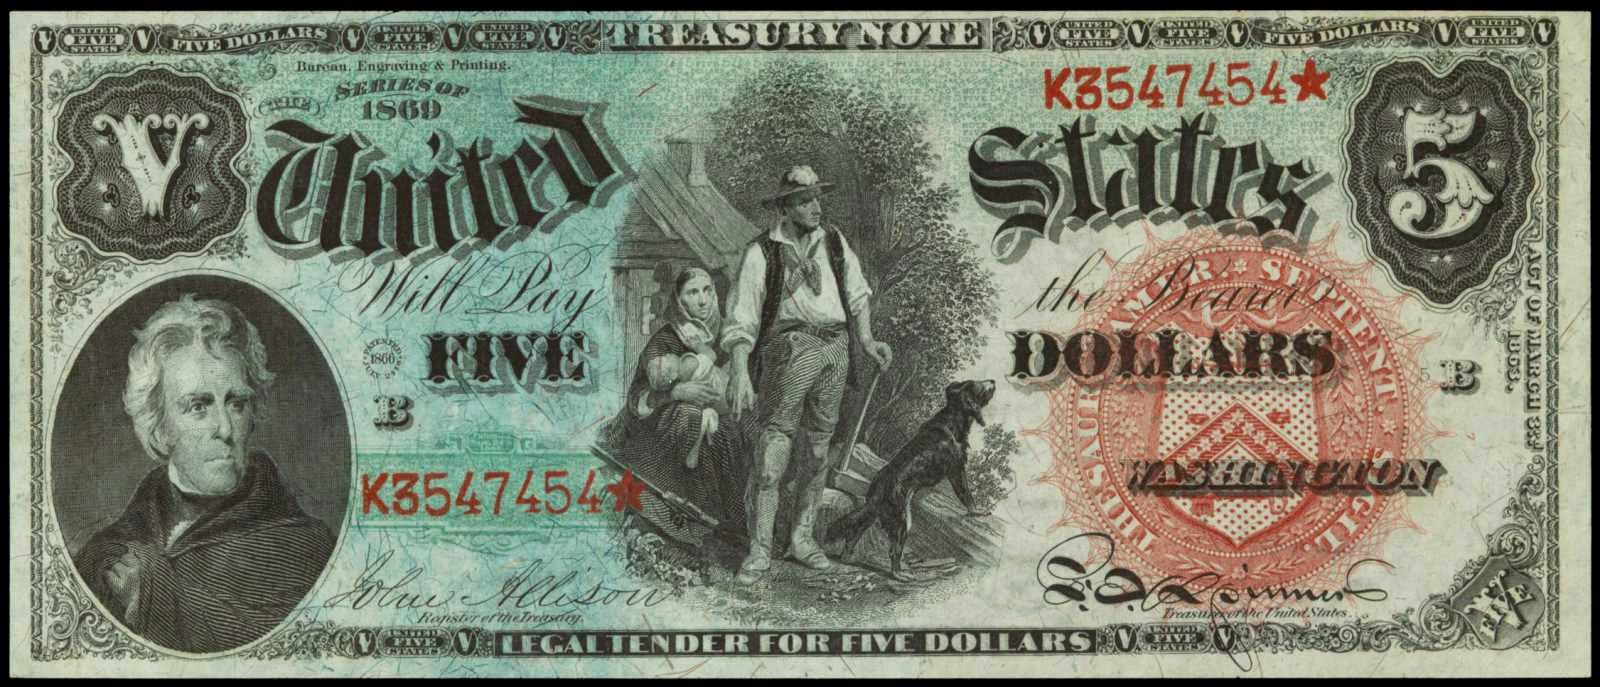 1869 5 Dollar bill Note Rainbow Woodchopper